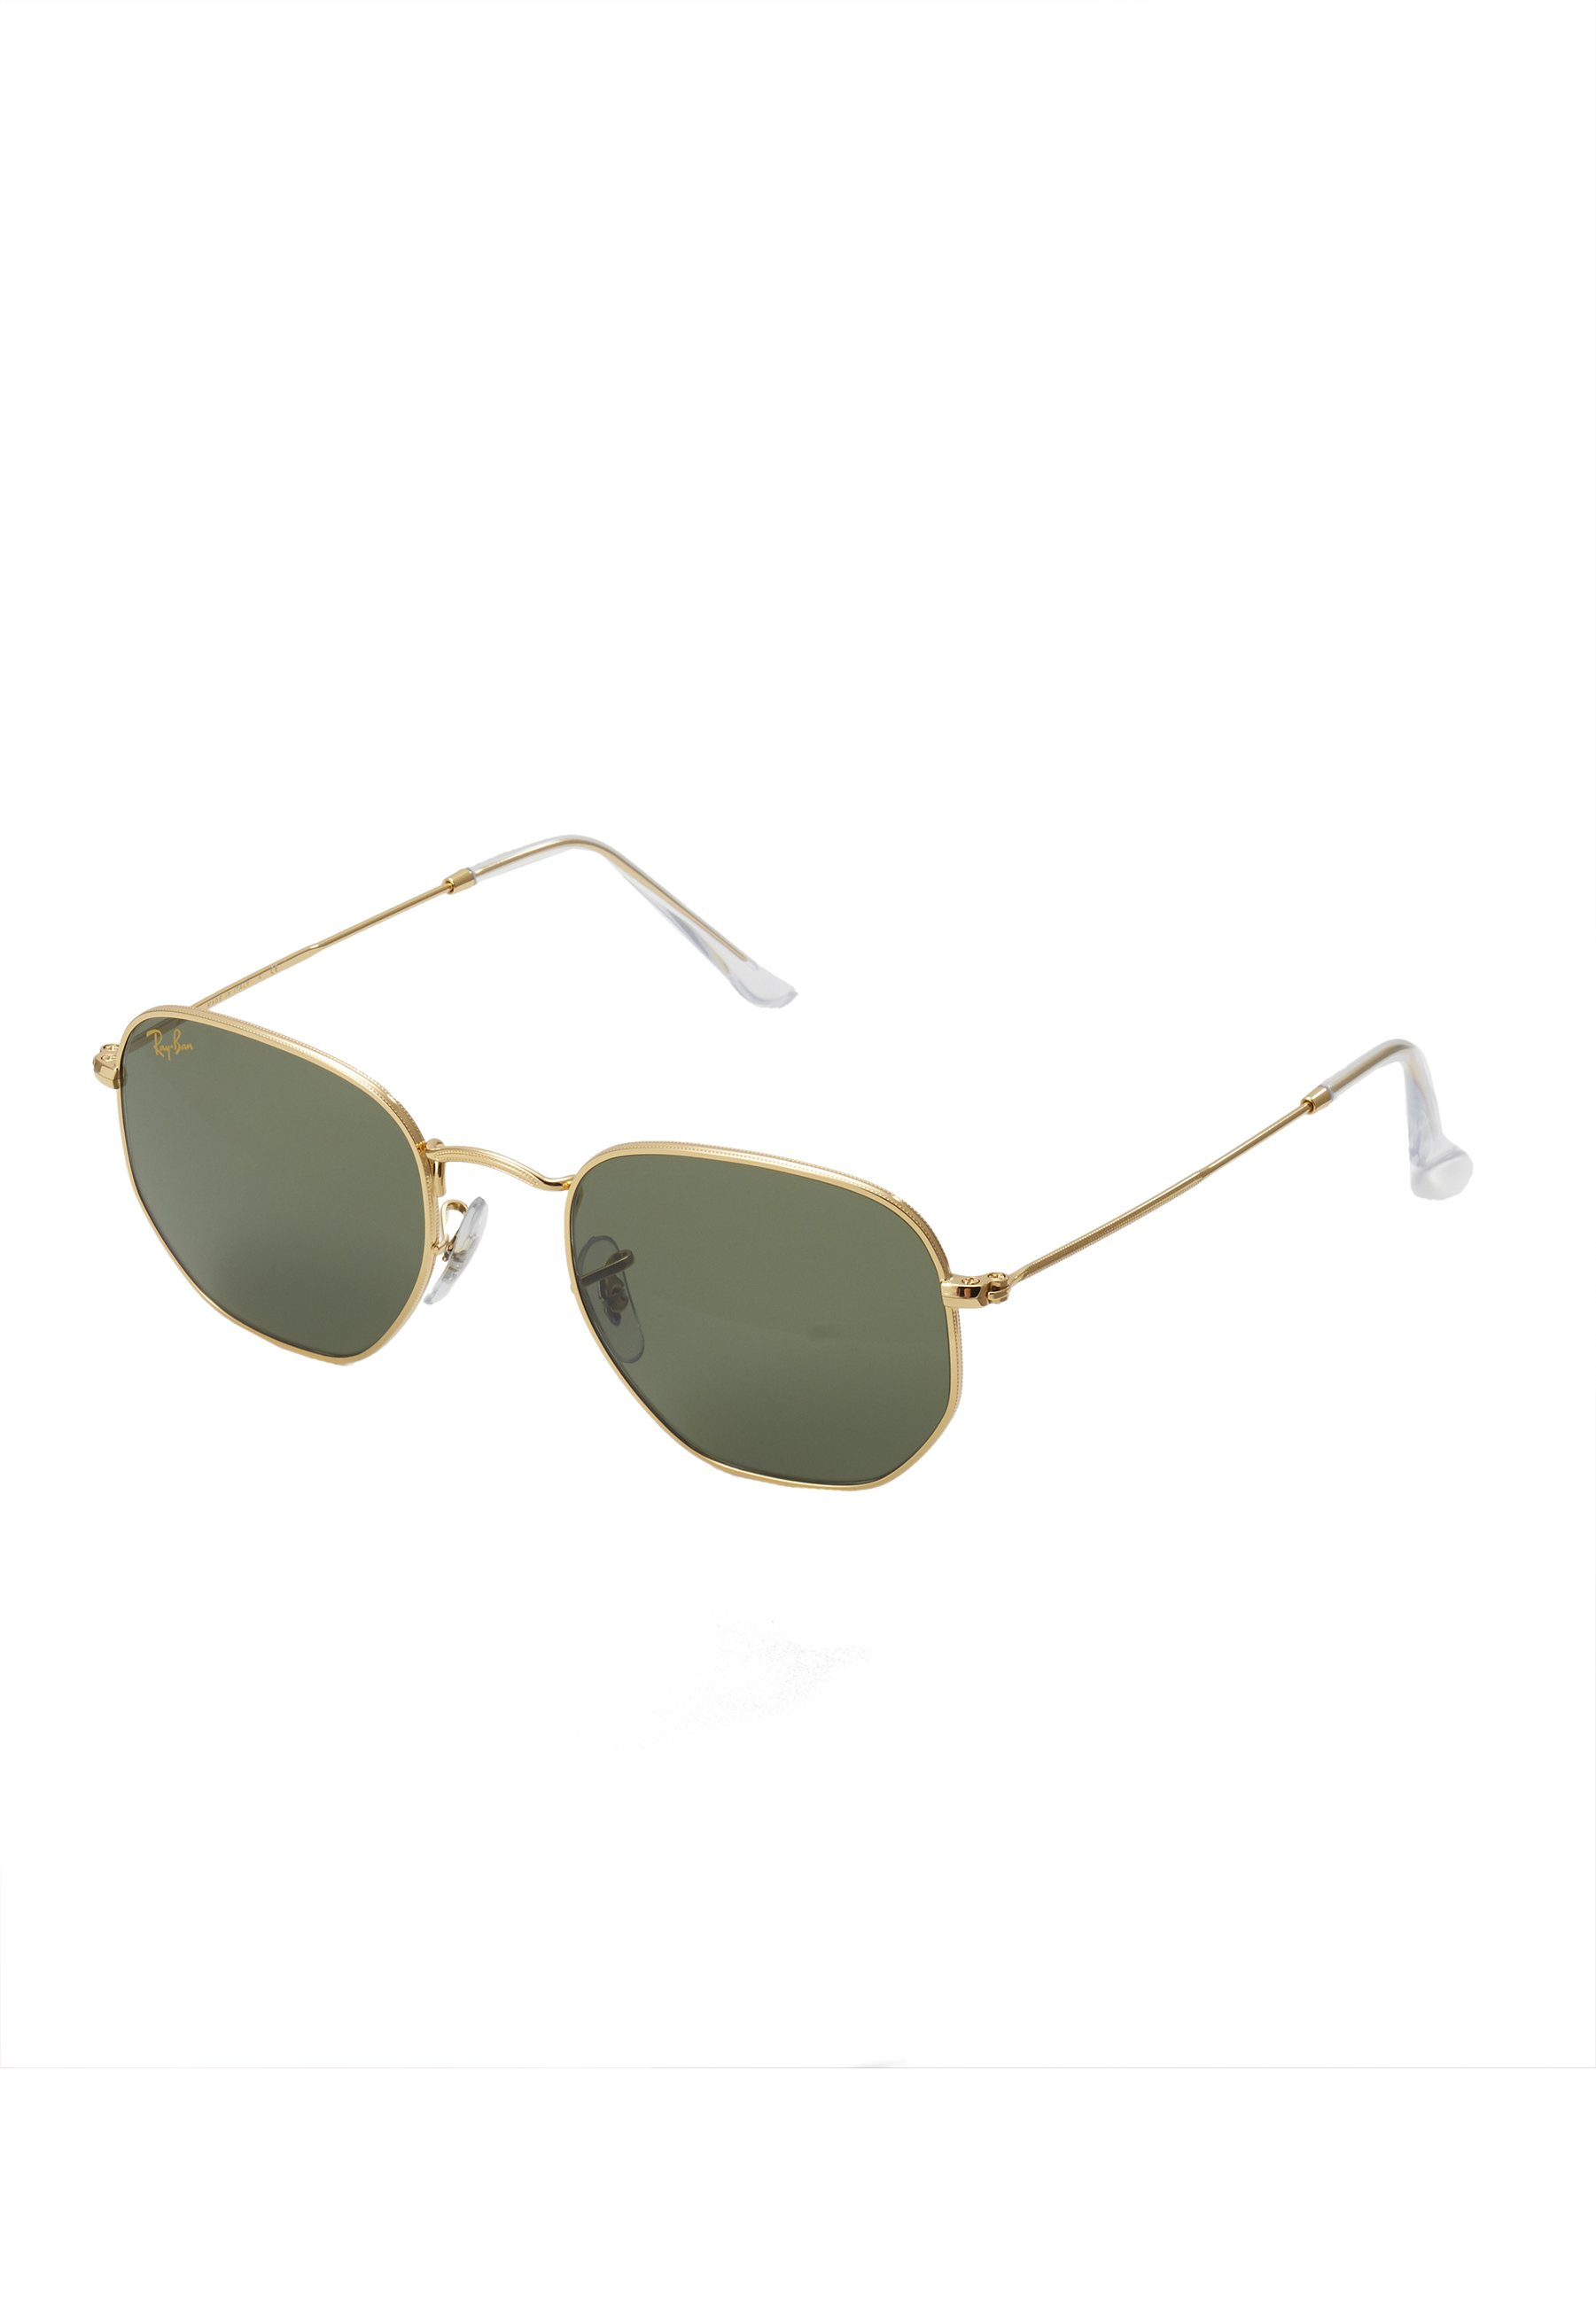 Ray-Ban Solbriller - gold-coloured/gull WseVVU8N84BIgsC